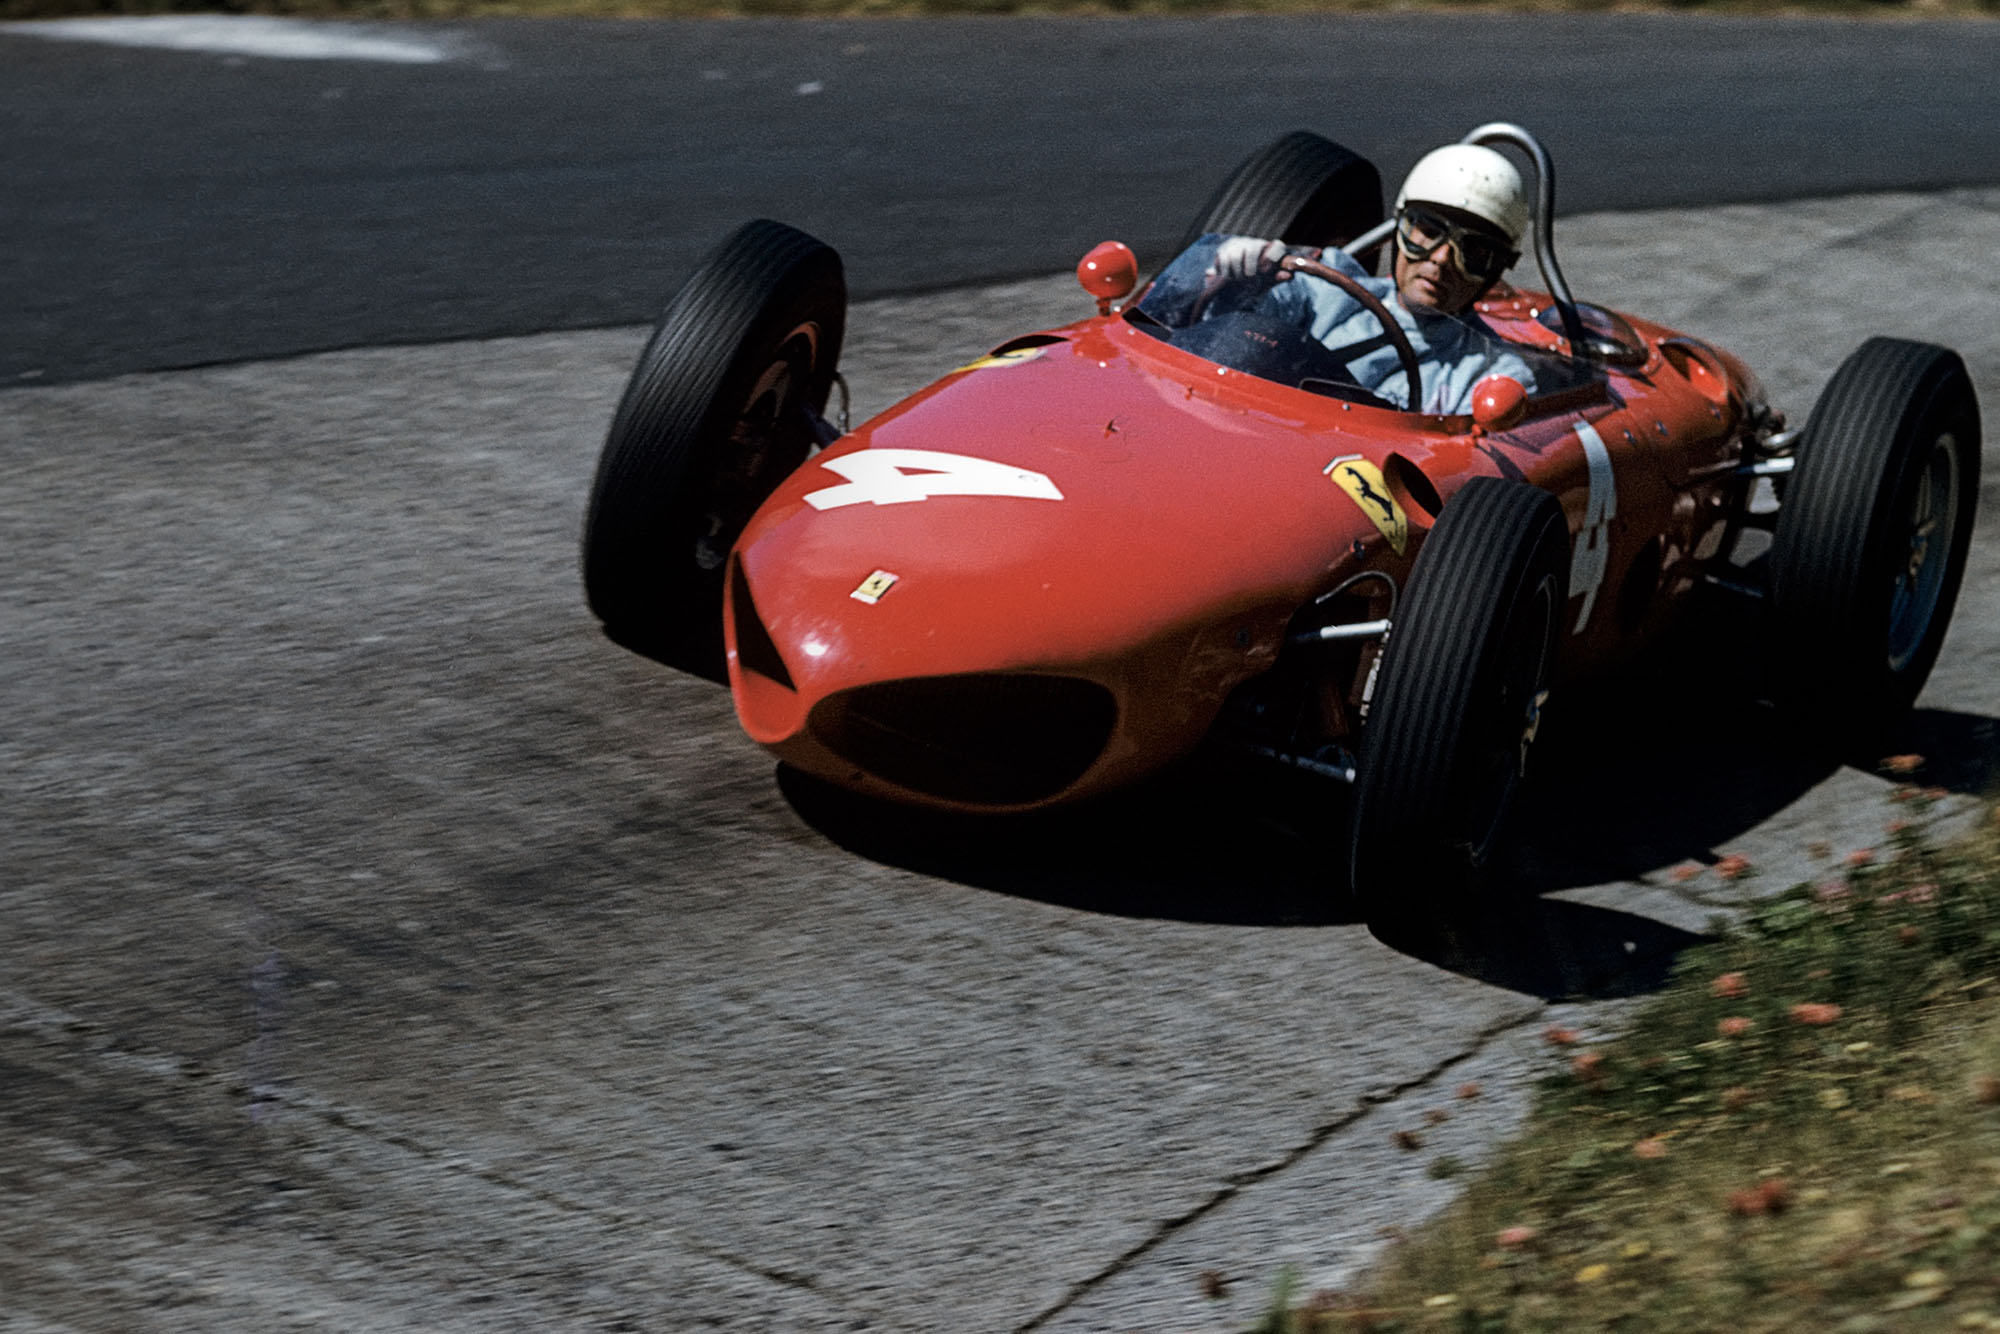 Phil Hill, Ferrari 156 Sharknose, Grand Prix of Germany, Nurburgring, 06 August 1961. Phil Hill driving his Ferrari 156 on the famous Karussell corner at the Nürburgring. (Photo by Bernard Cahier/Getty Images)